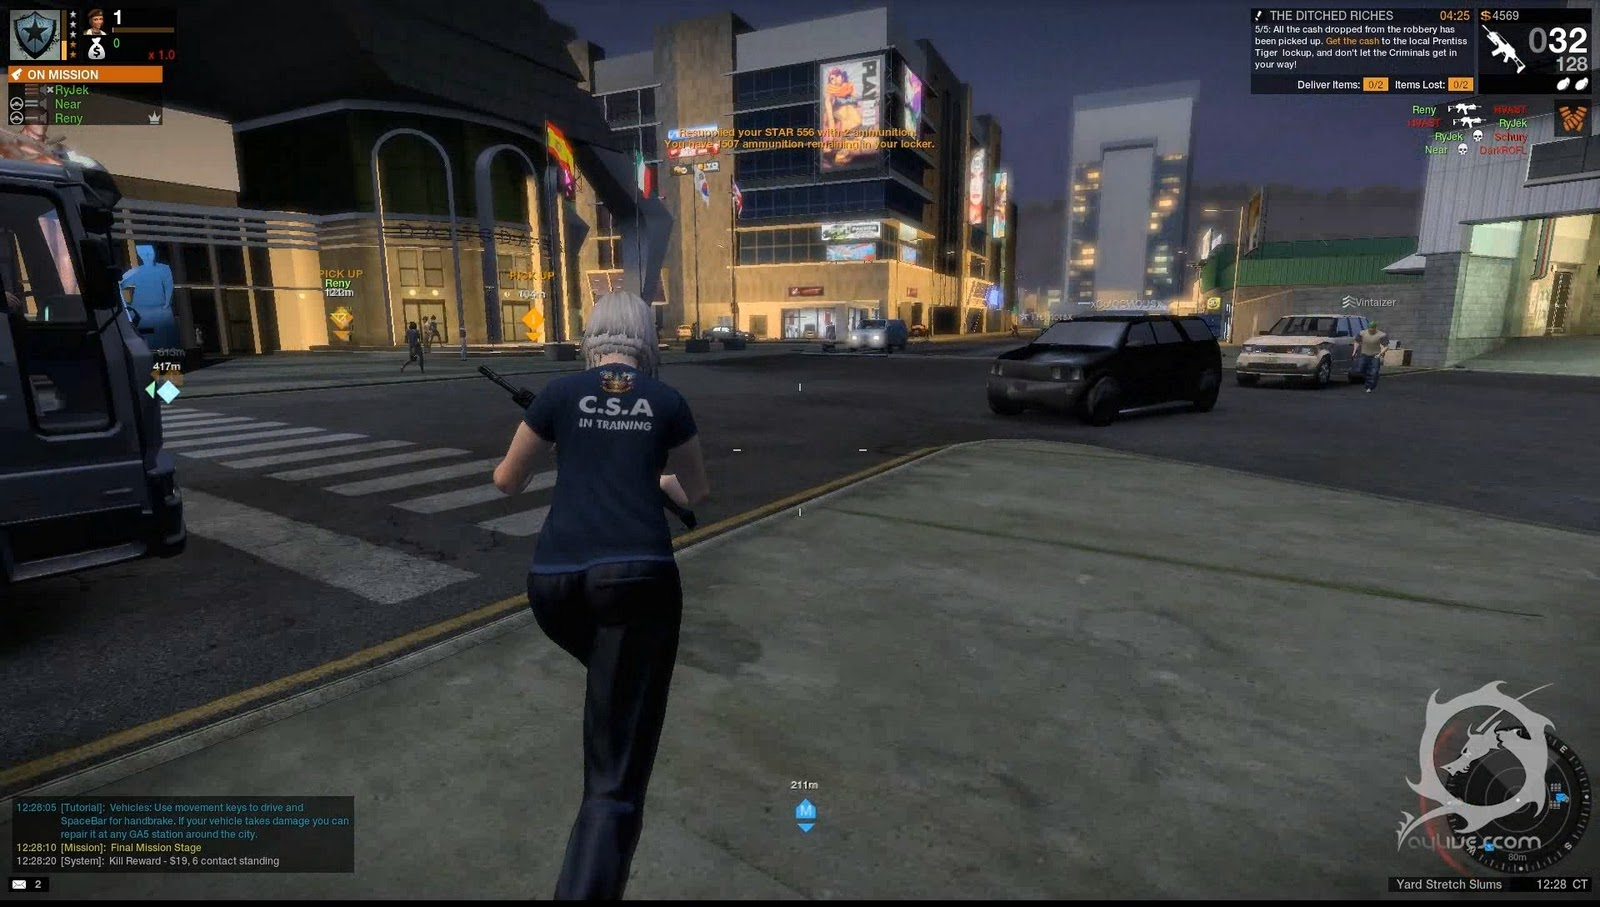 gta game free online no download